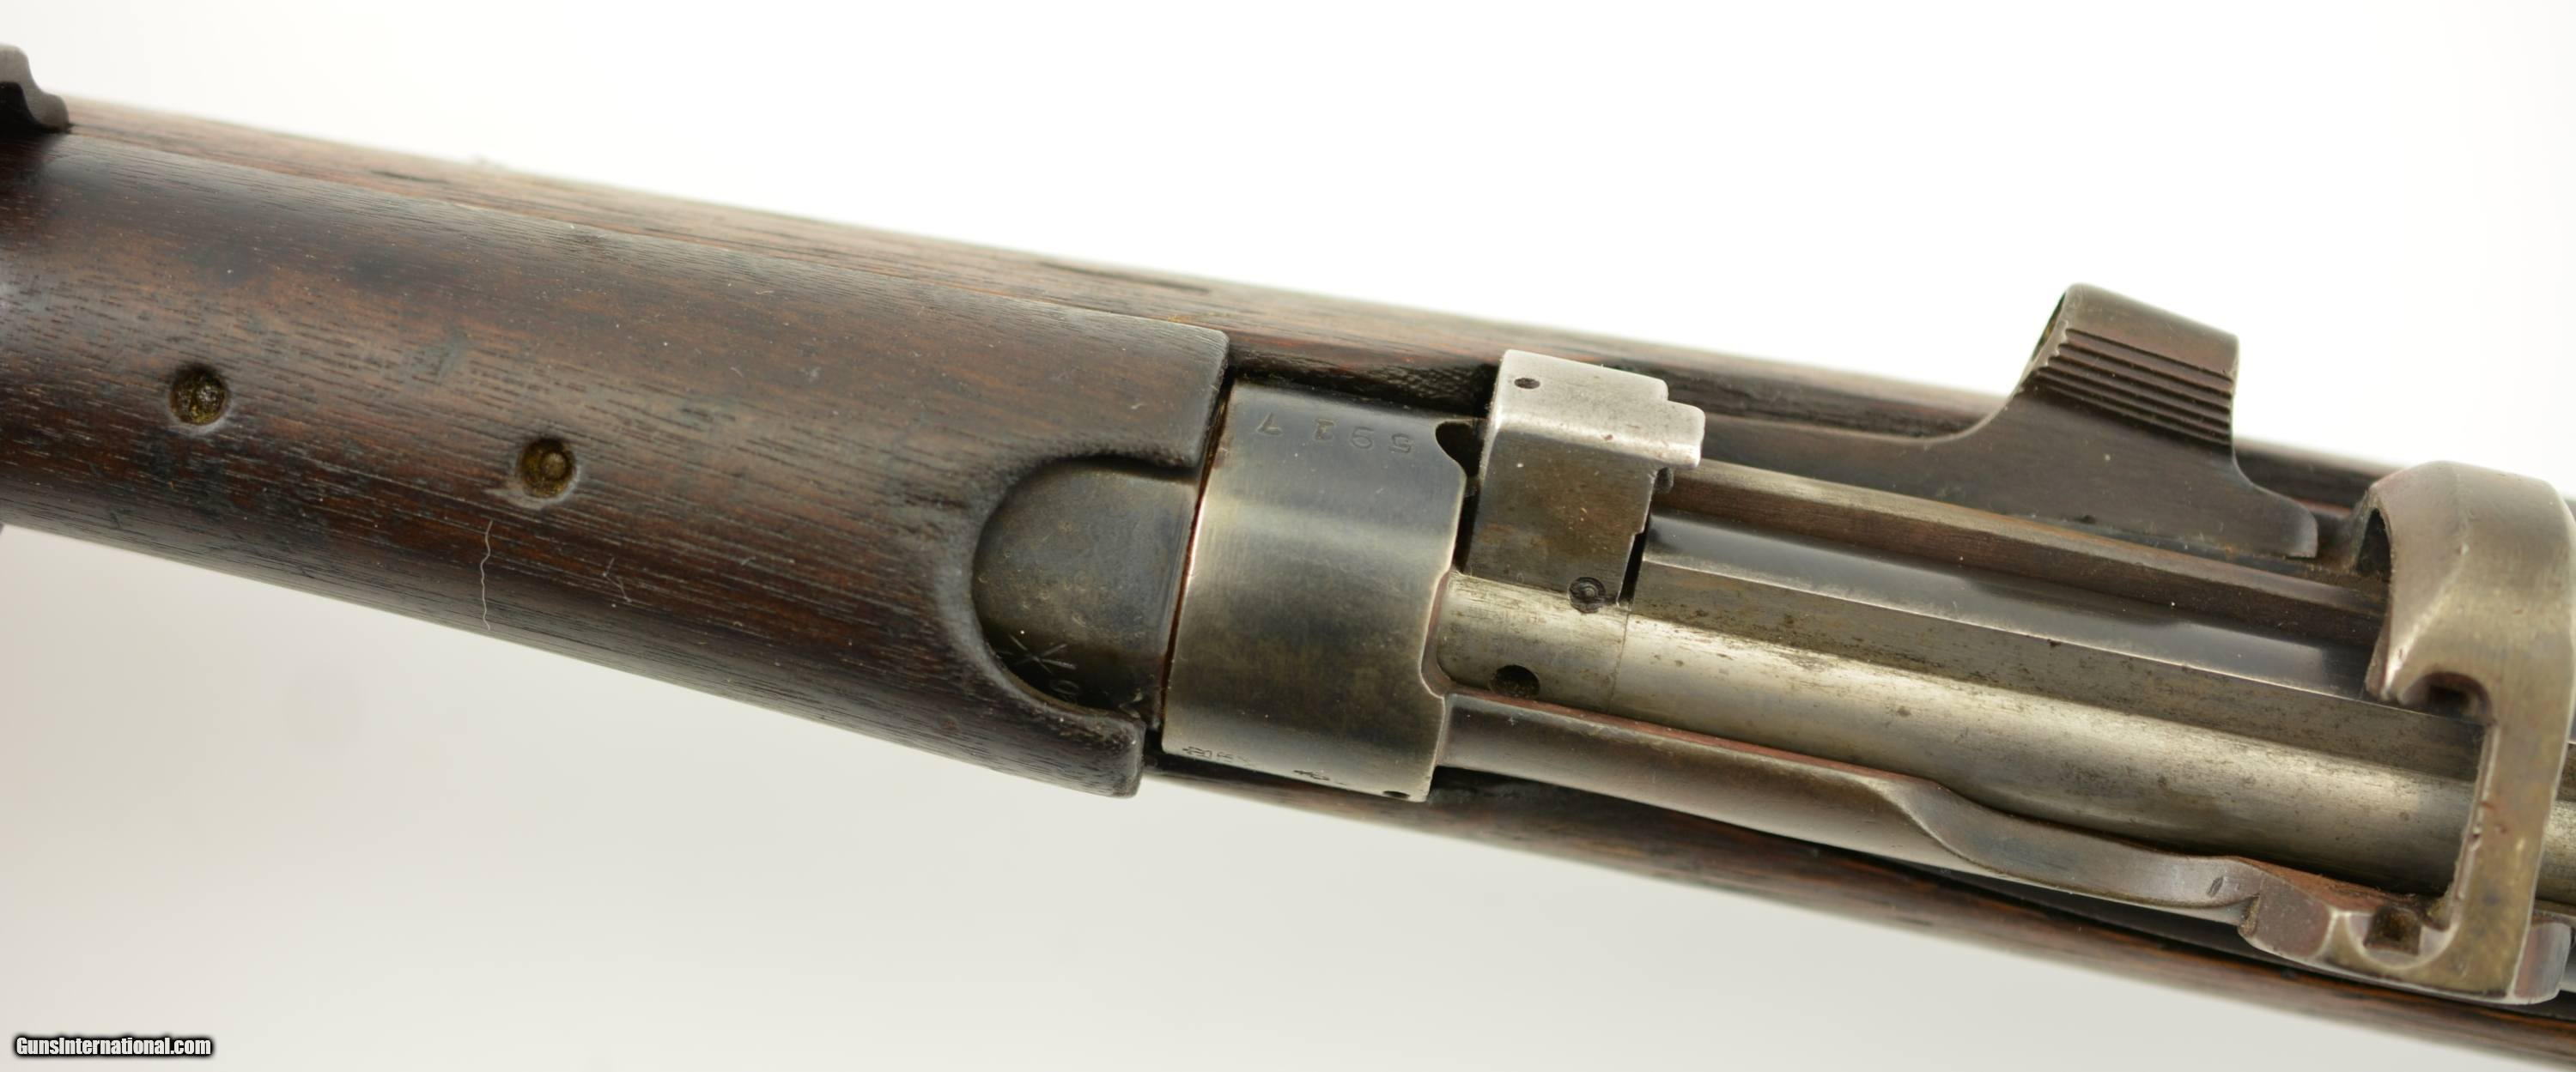 from Jack dating enfield rifles